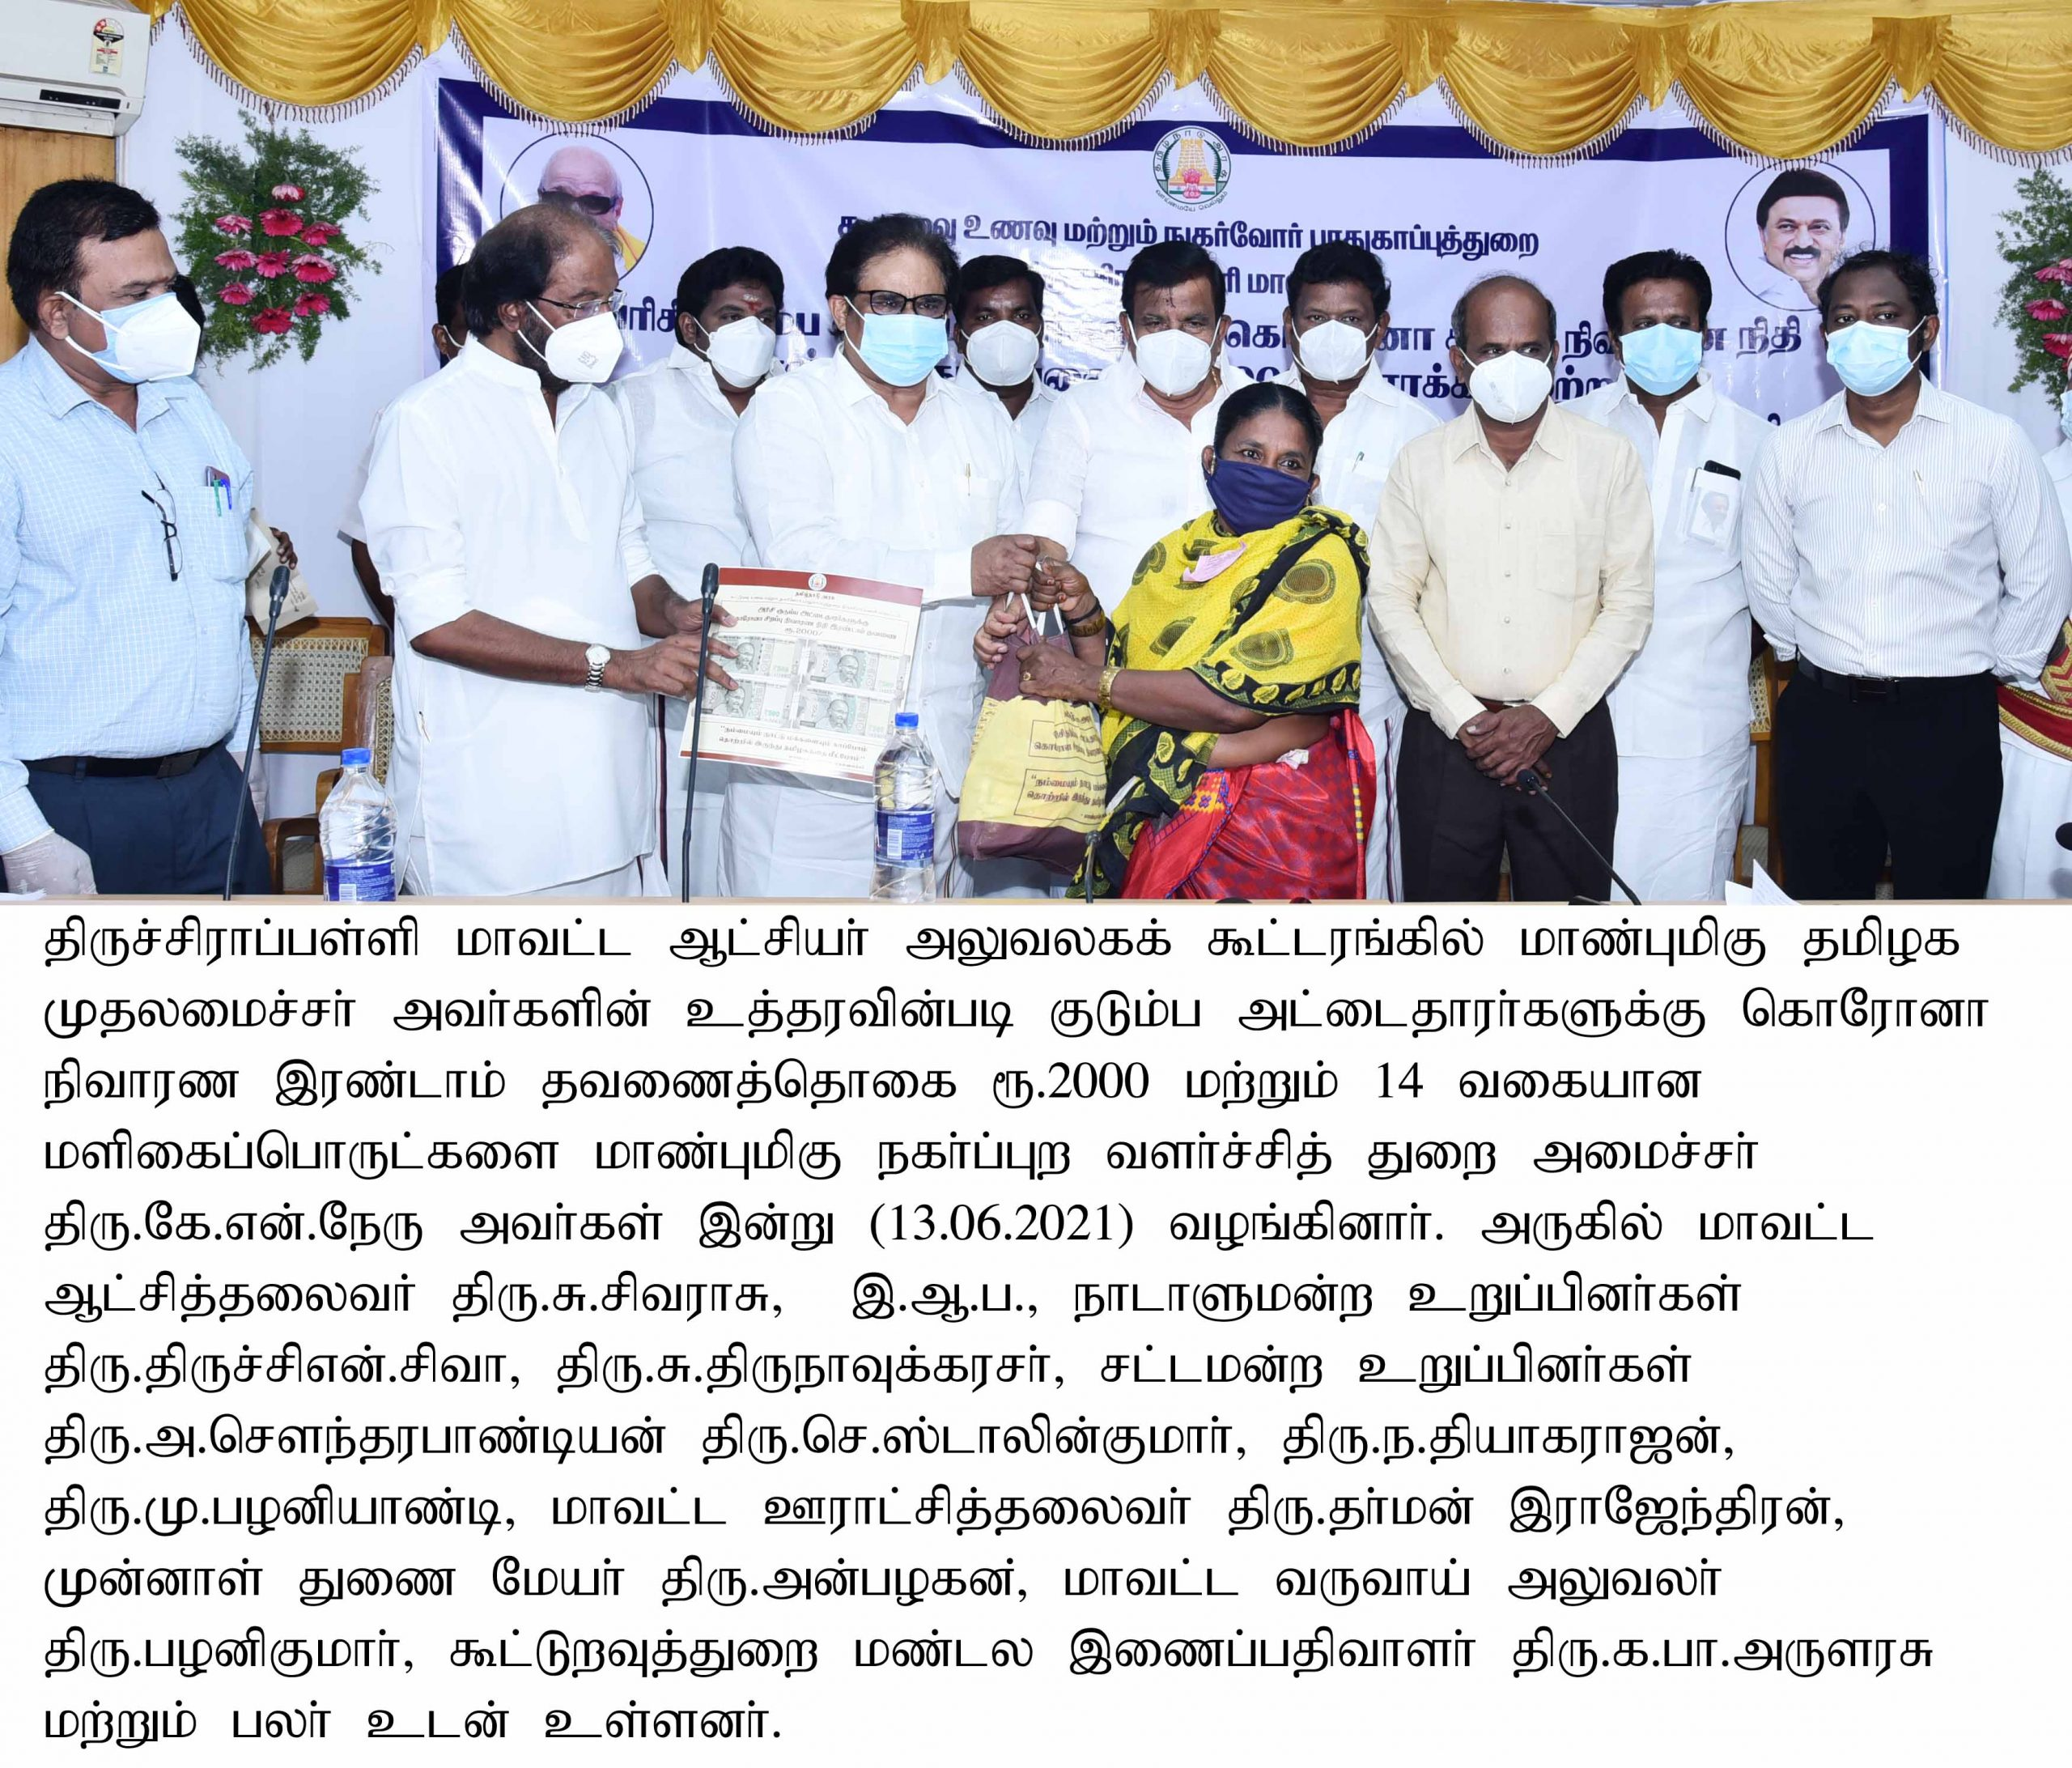 Hon'ble Urban Development Minister distributed 2nd Installment Covid-19 Relief Fund and 14 Grocery Items on 13.06.2021